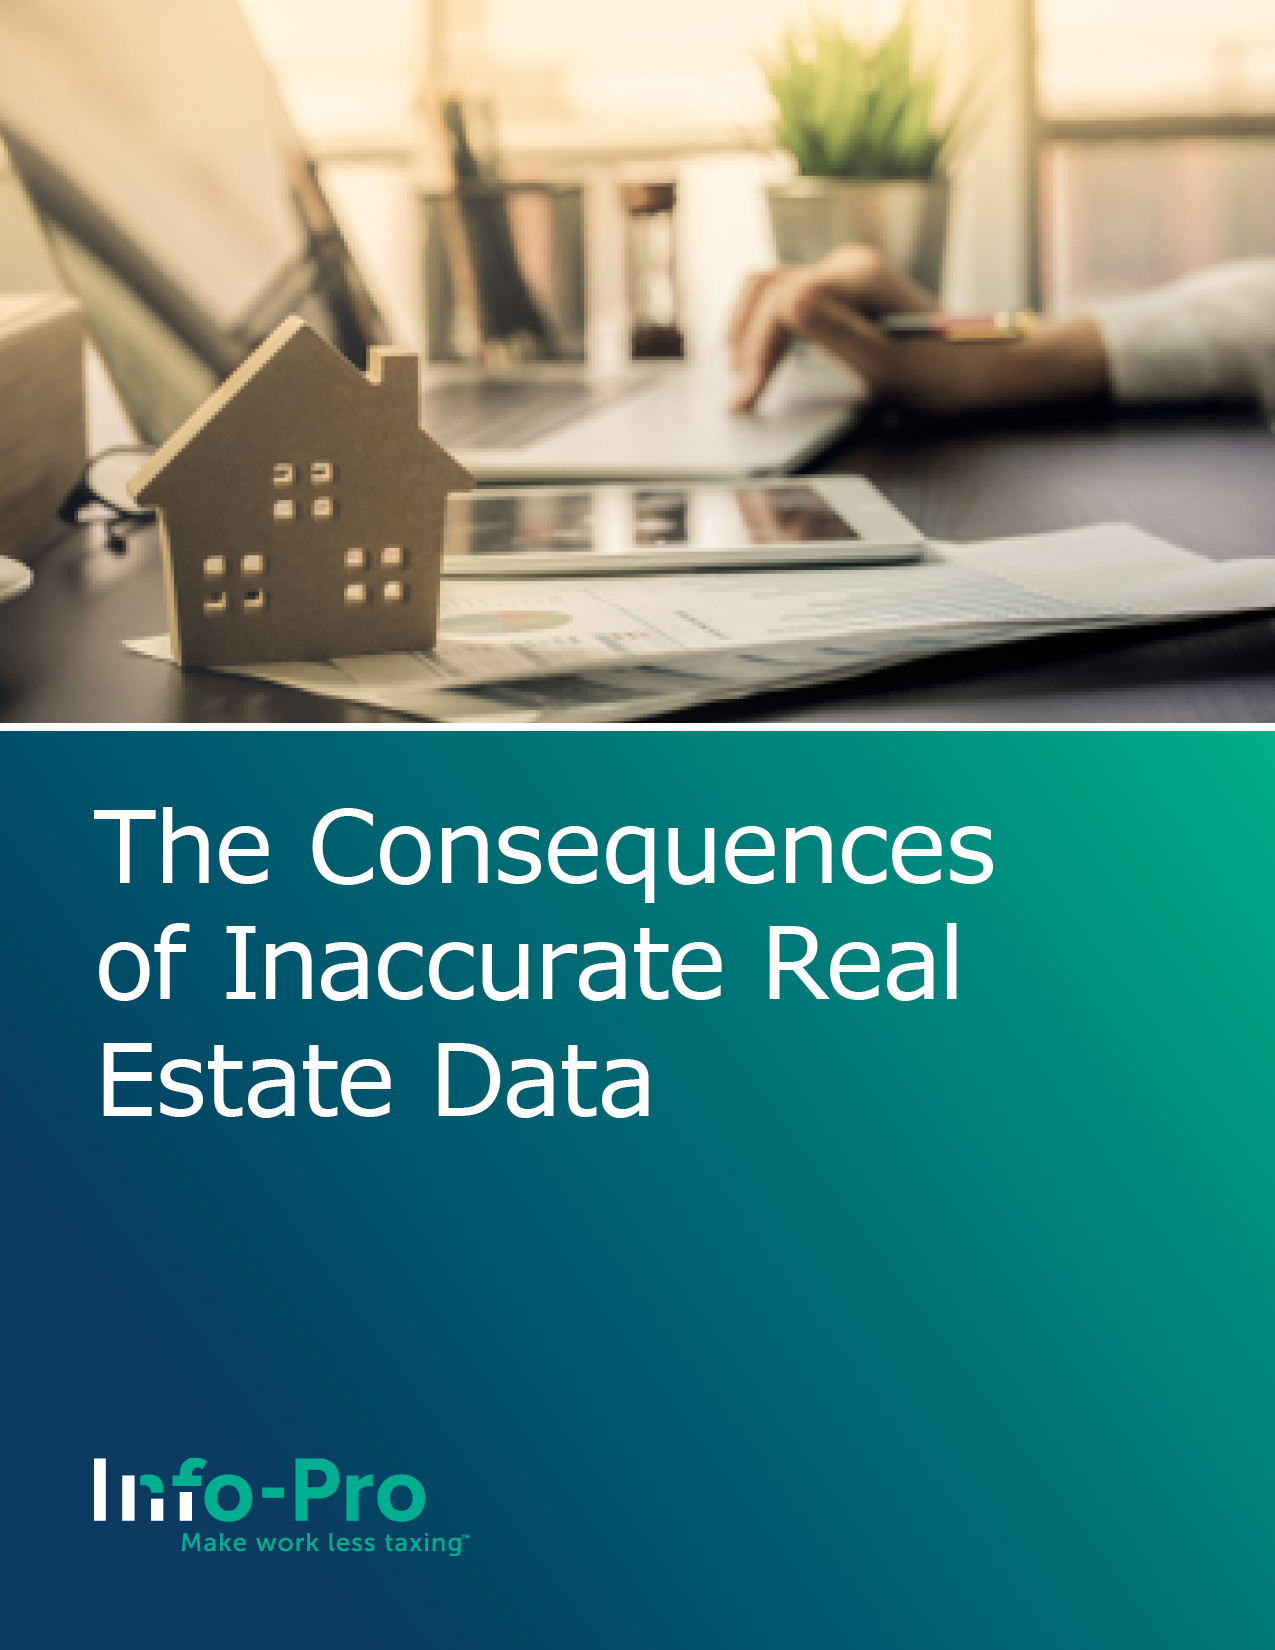 The Consequences of Inaccurate Real Estate Data